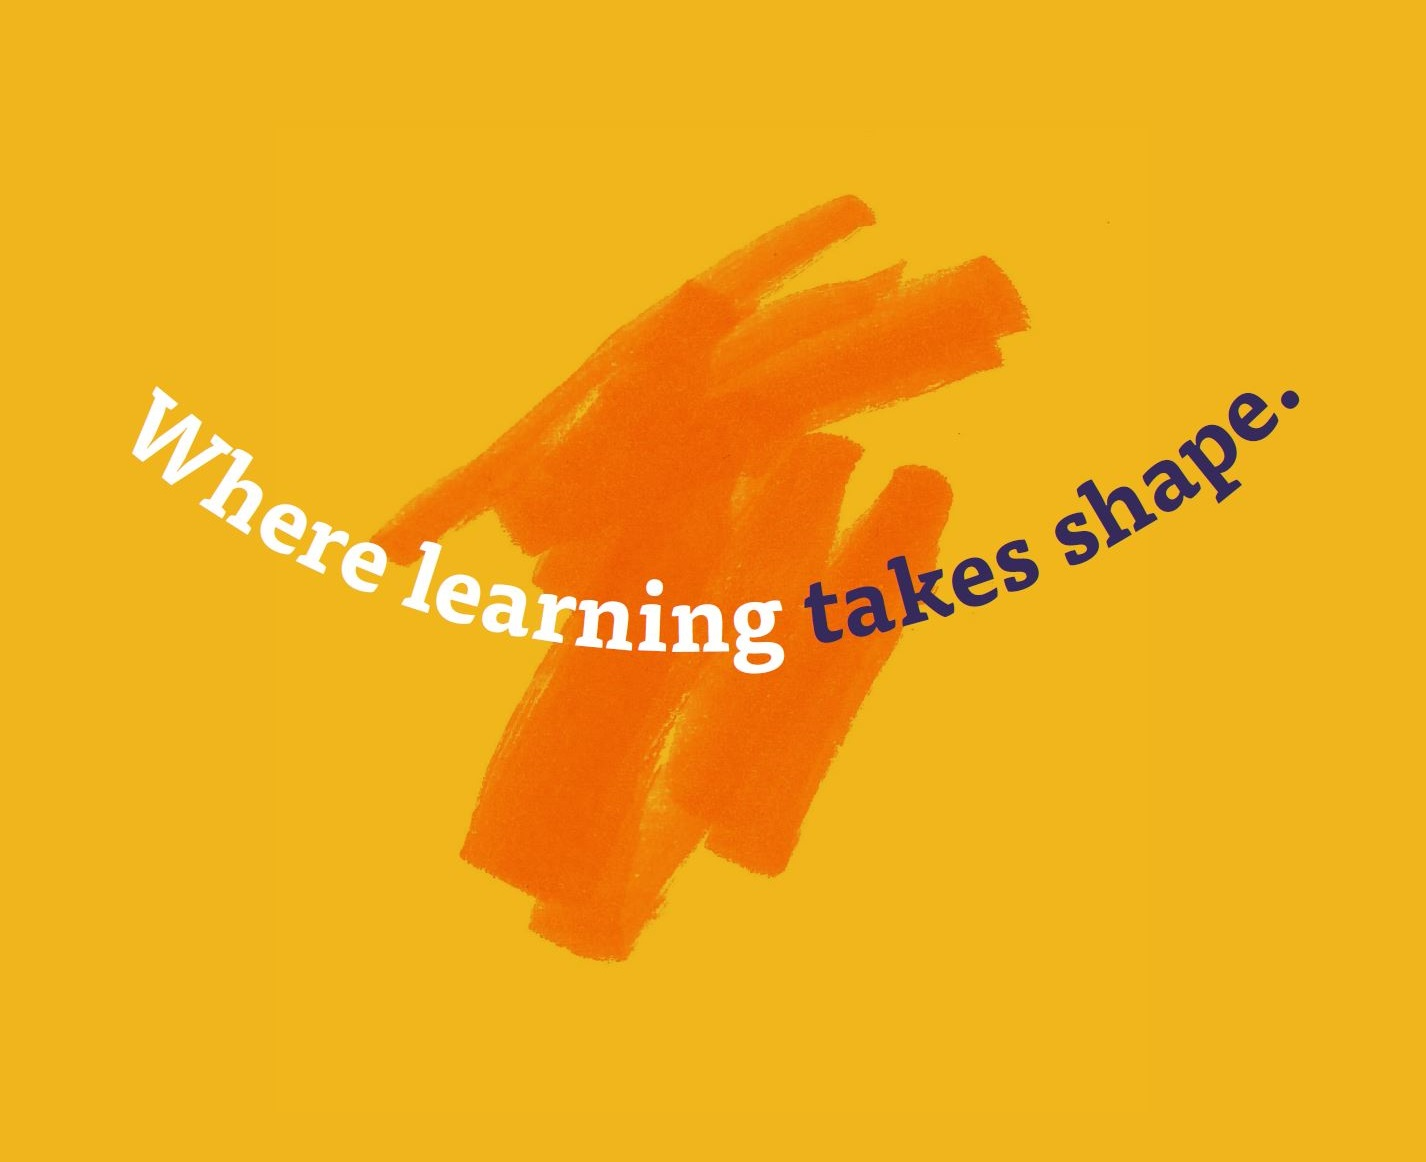 Where Learning Takes Shape